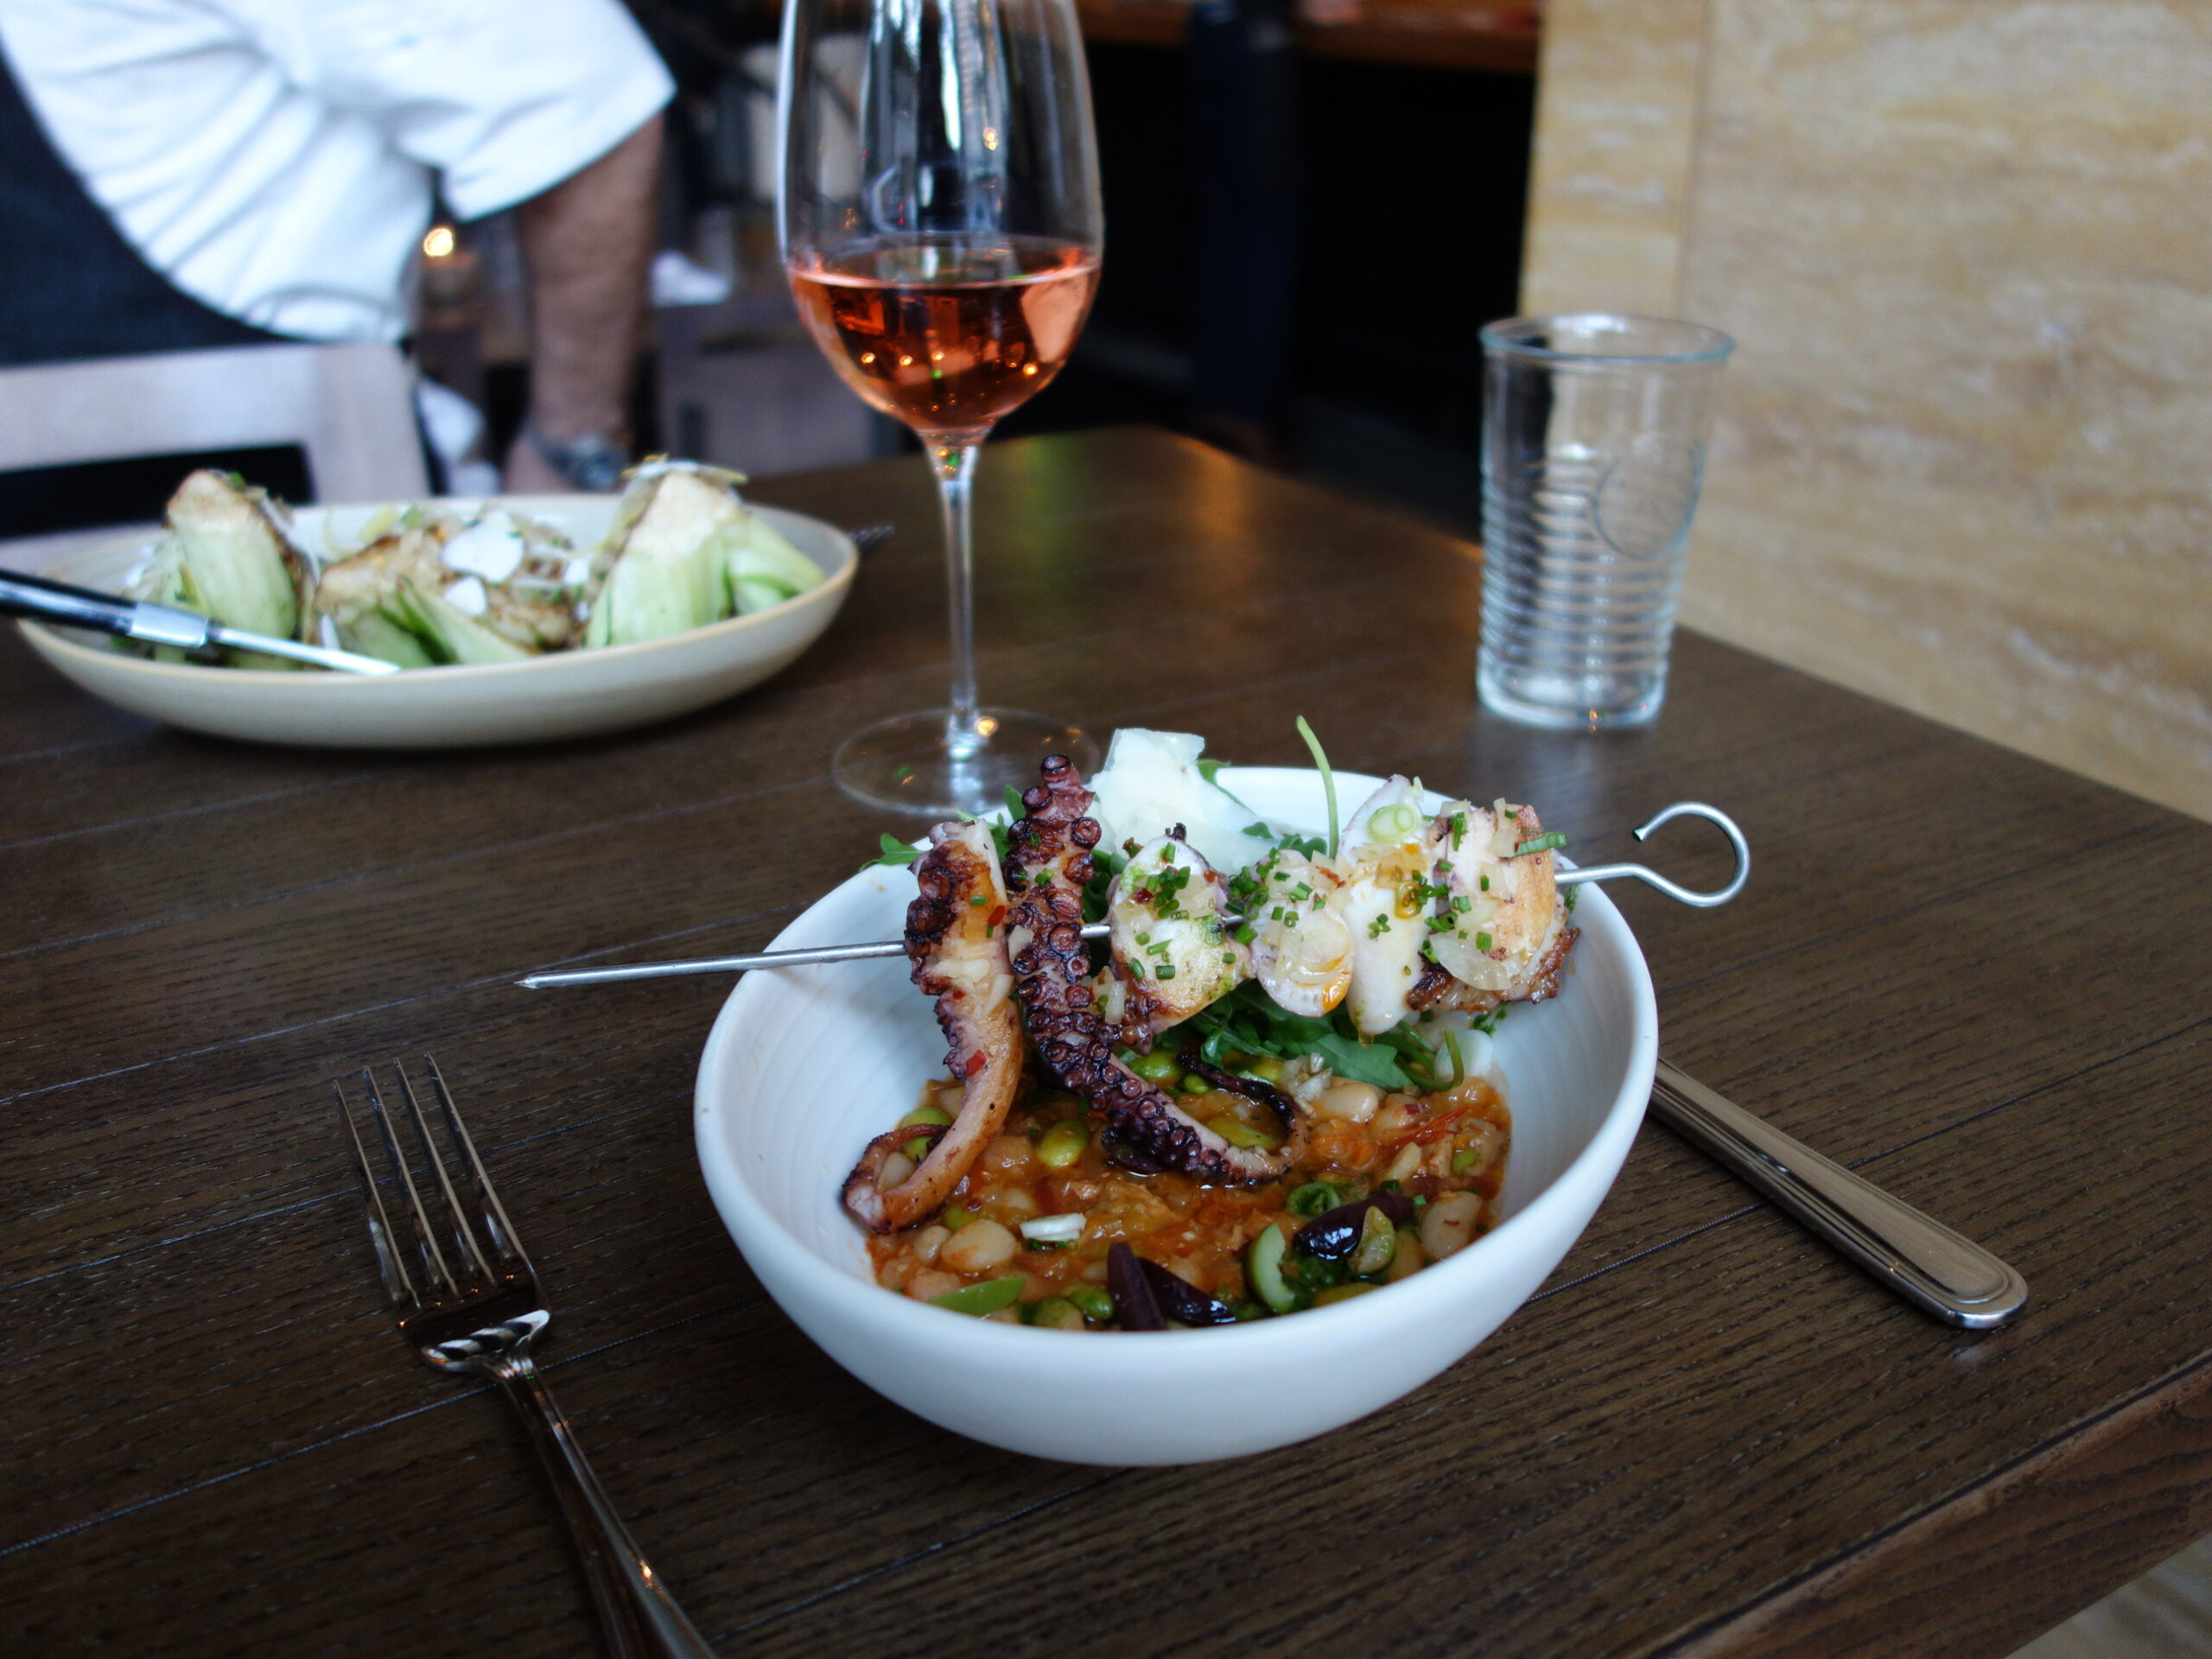 Multi regional italian cuisine hits downtown austin at red - Regional italian cuisine ...